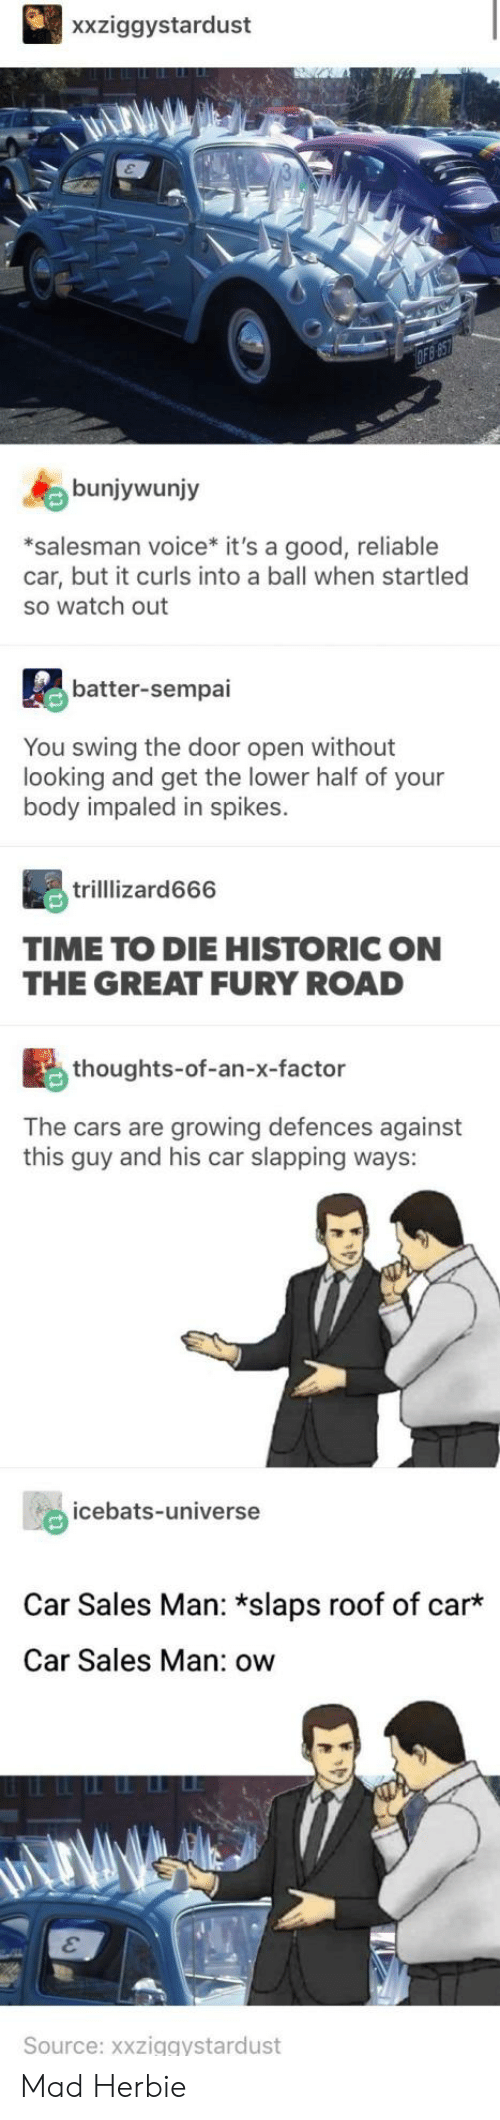 the cars: xxziggystardust  bunjywunjy  *salesman voice* it's a good, reliable  car, but it curls into a ball when startled  so watch out  batter-sempai  You swing the door open without  looking and get the lower half of your  body impaled in spikes.  trilllizard666  TIME TO DIE HISTORIC ON  THE GREAT FURY ROAD  thoughts-of-an-x-factor  The cars are growing defences against  this guy and his car slapping ways:  icebats-universe  Car Sales Man: *slaps roof of car  Car Sales Man: ow  Source: xxziggystardust Mad Herbie